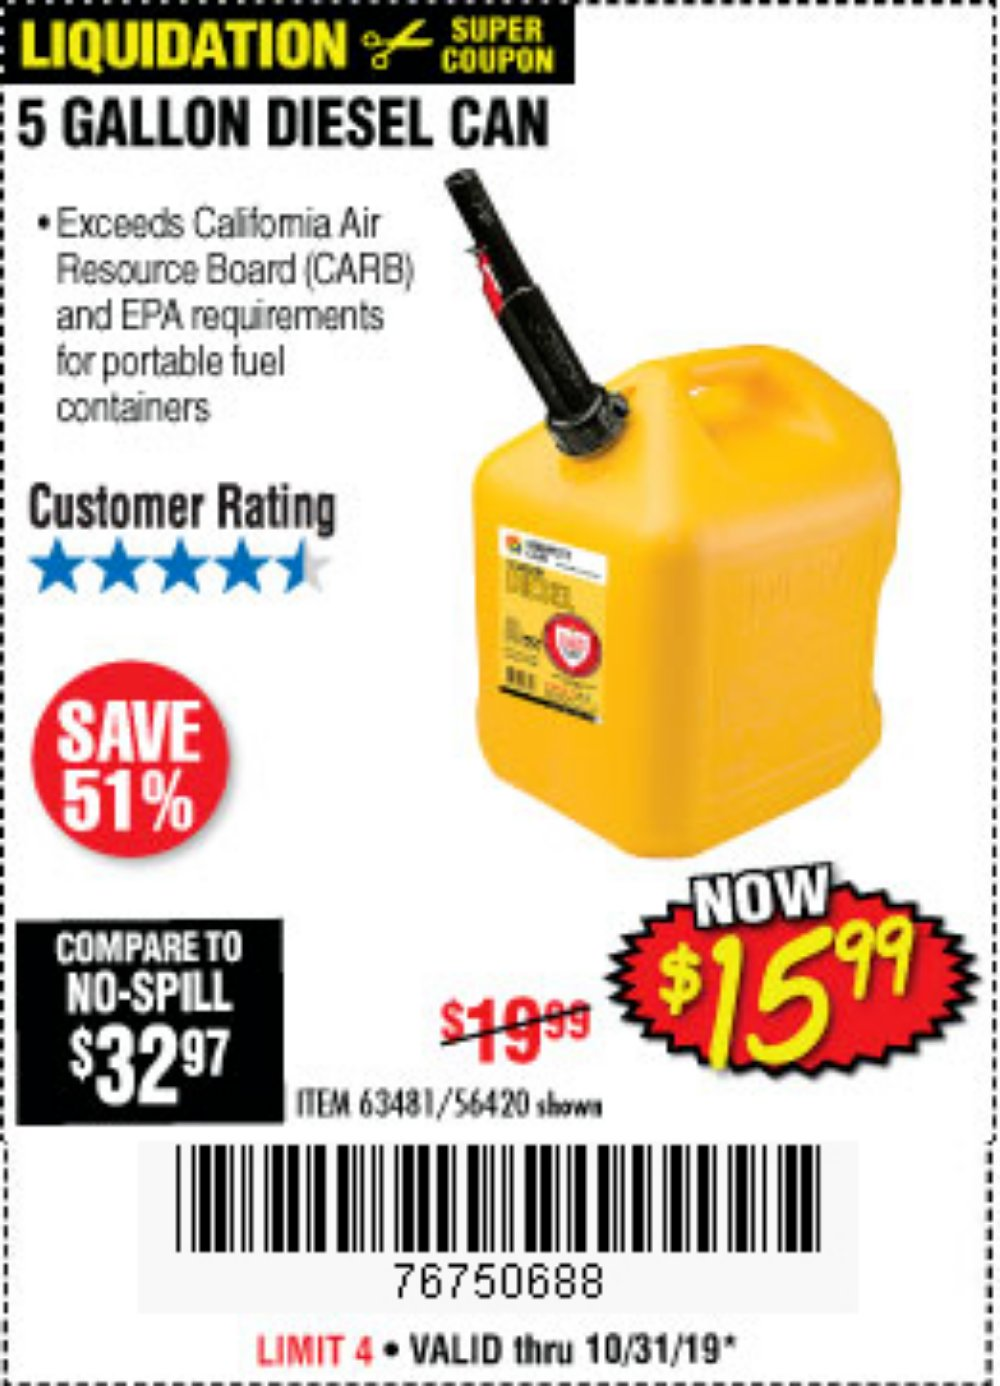 Harbor Freight Coupon, HF Coupons - 5 Gallon Diesel Can